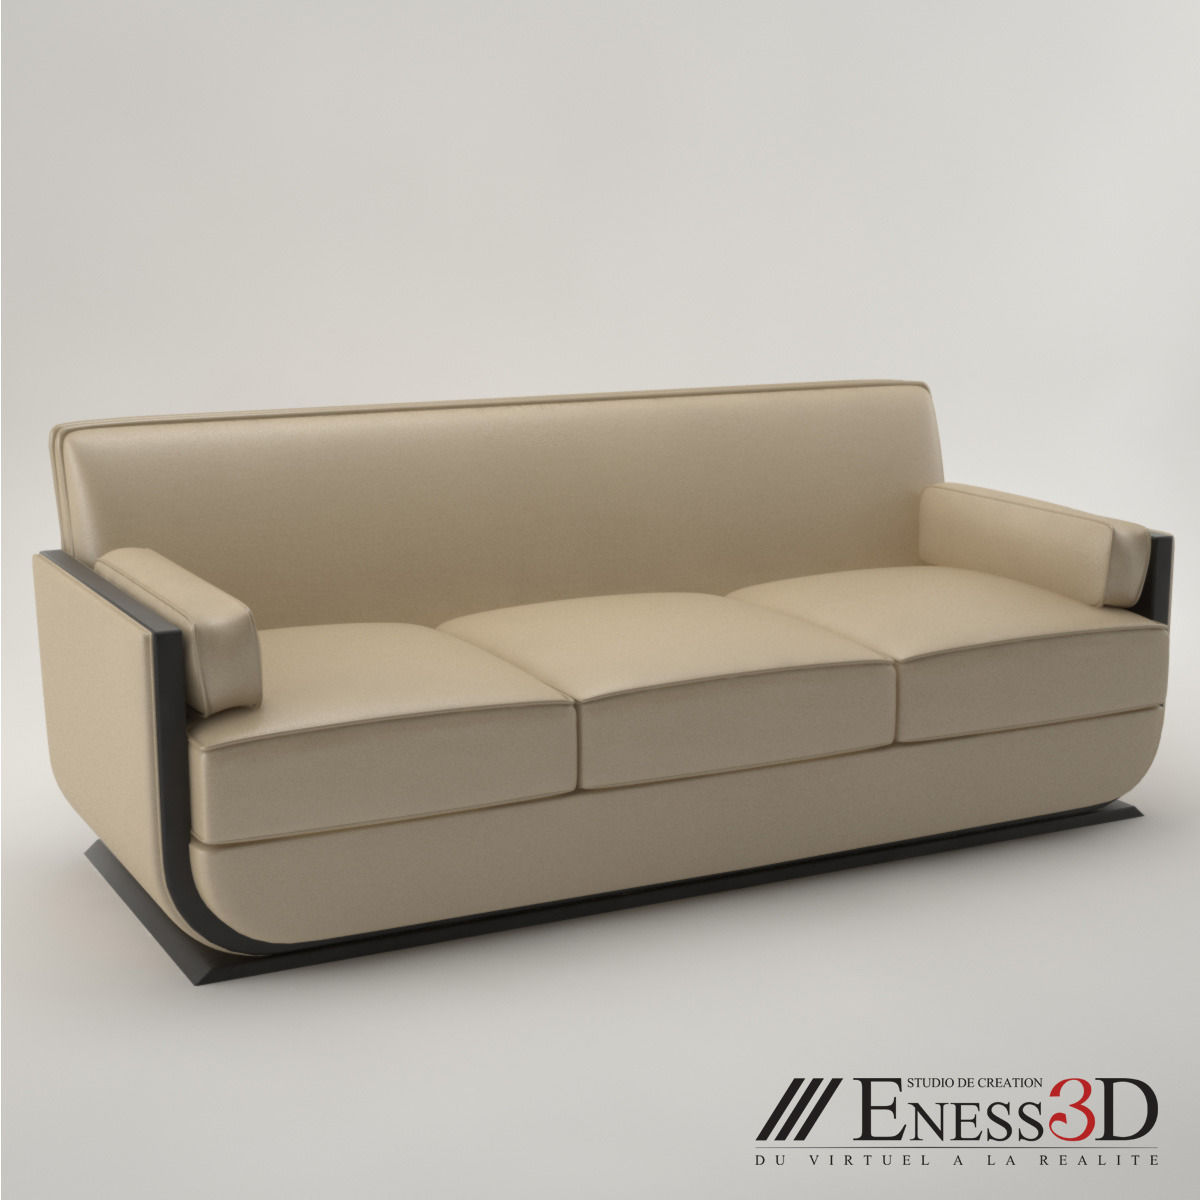 Pro Art Deco Sofa 1930 Model Max Obj Fbx Unitypackage 1